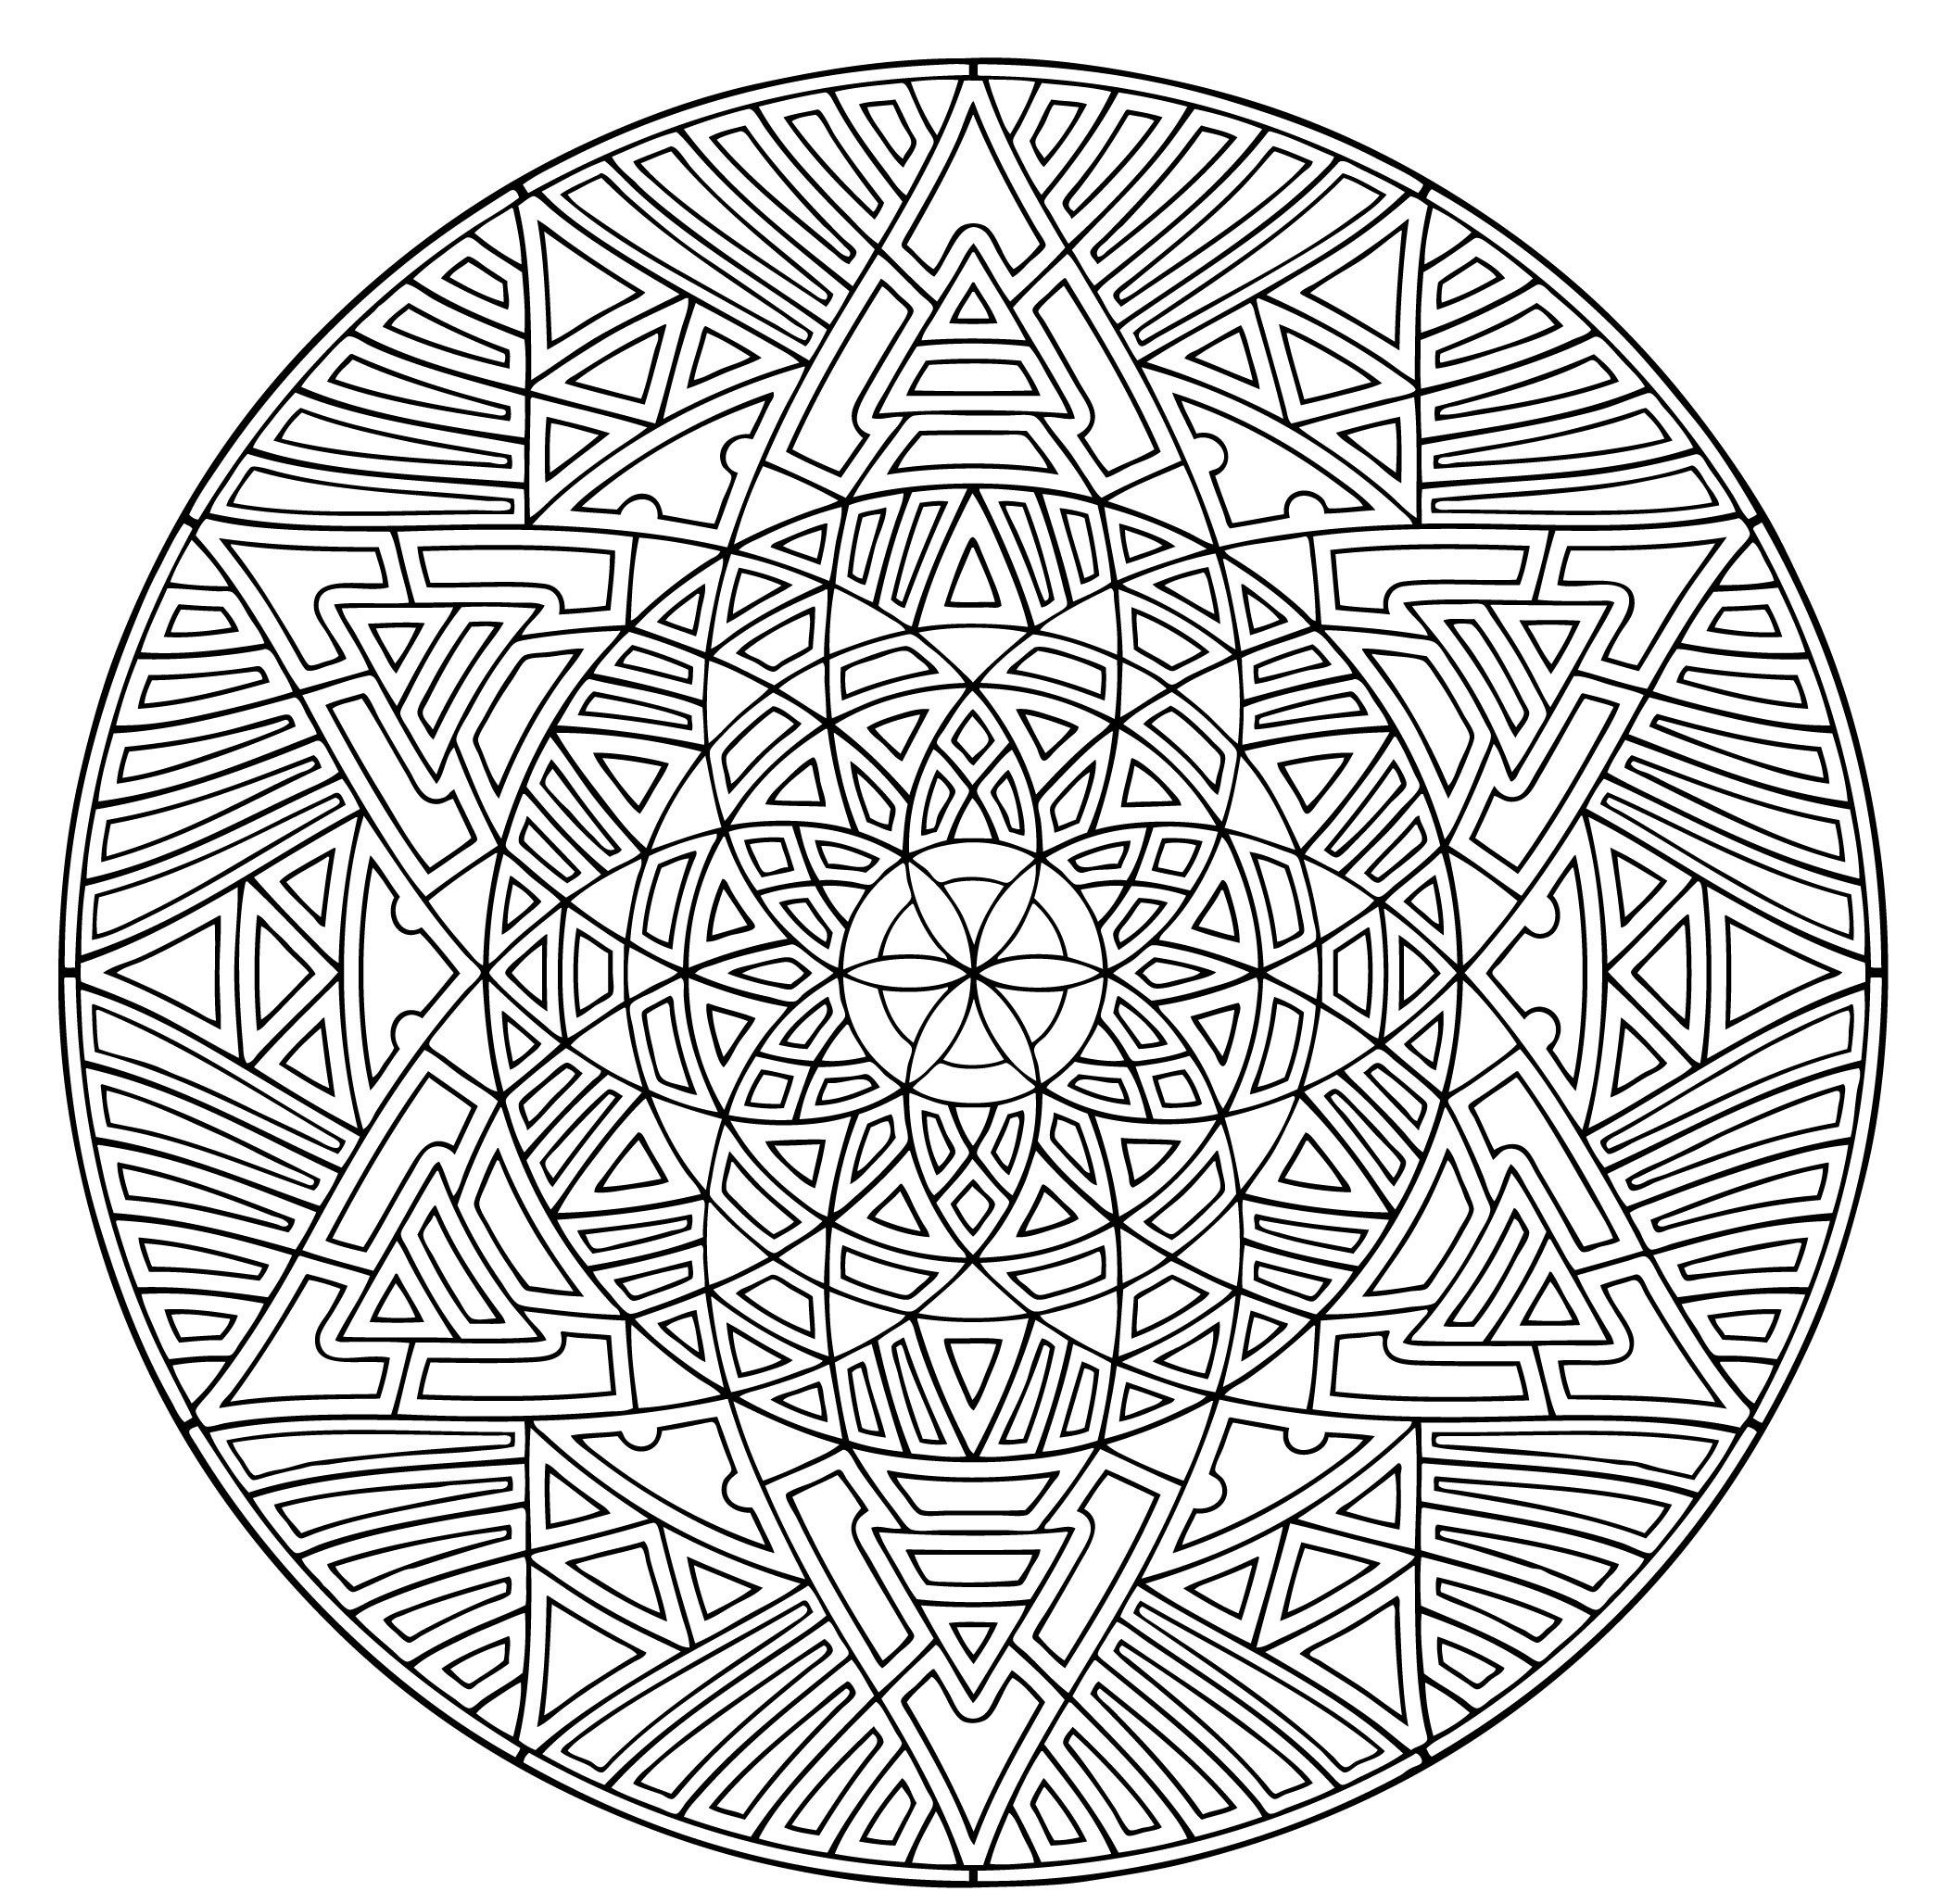 coloring pages adults pdf - Google Search | Coloring books ...Detailed Mandala Coloring Pages For Adults